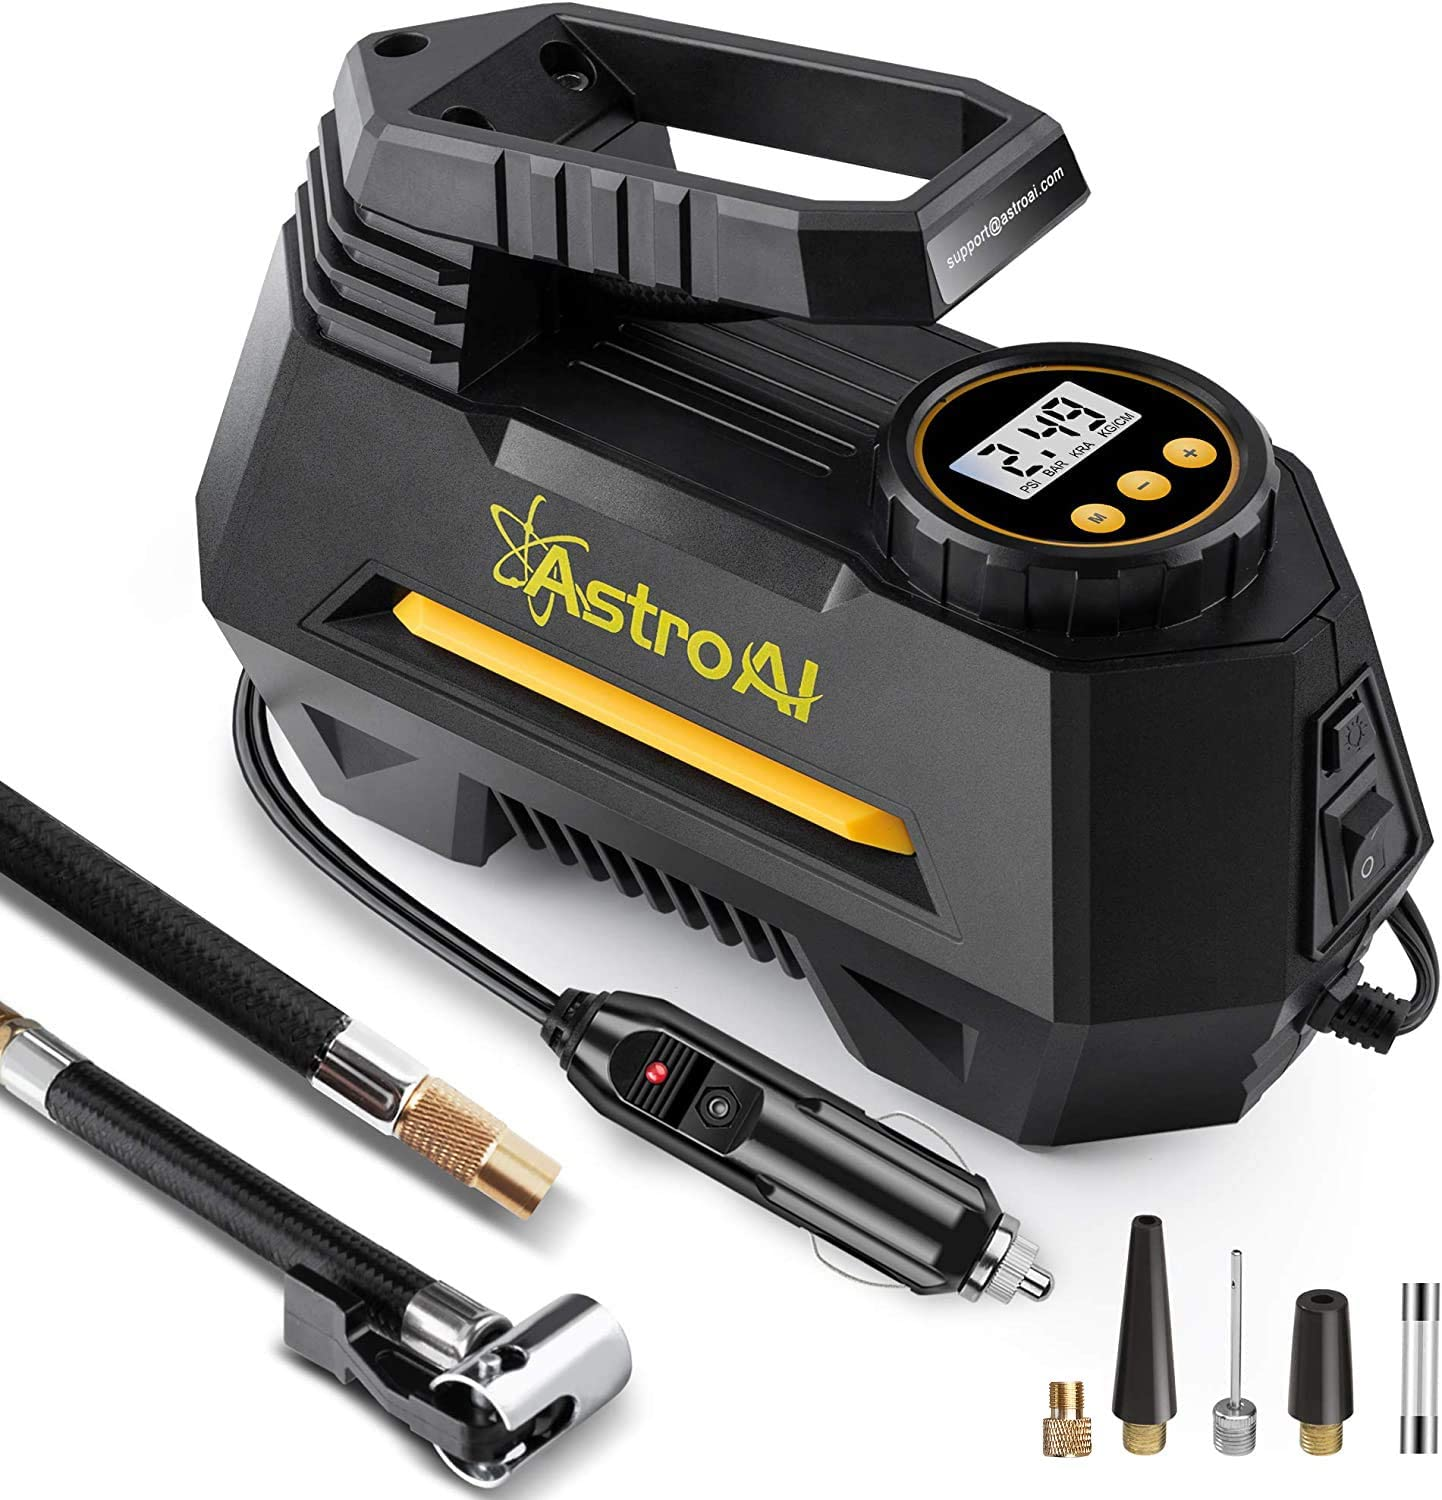 Top 6 Best Air Compressor for Automotive Air Tools [Buying Guide-2021] 6